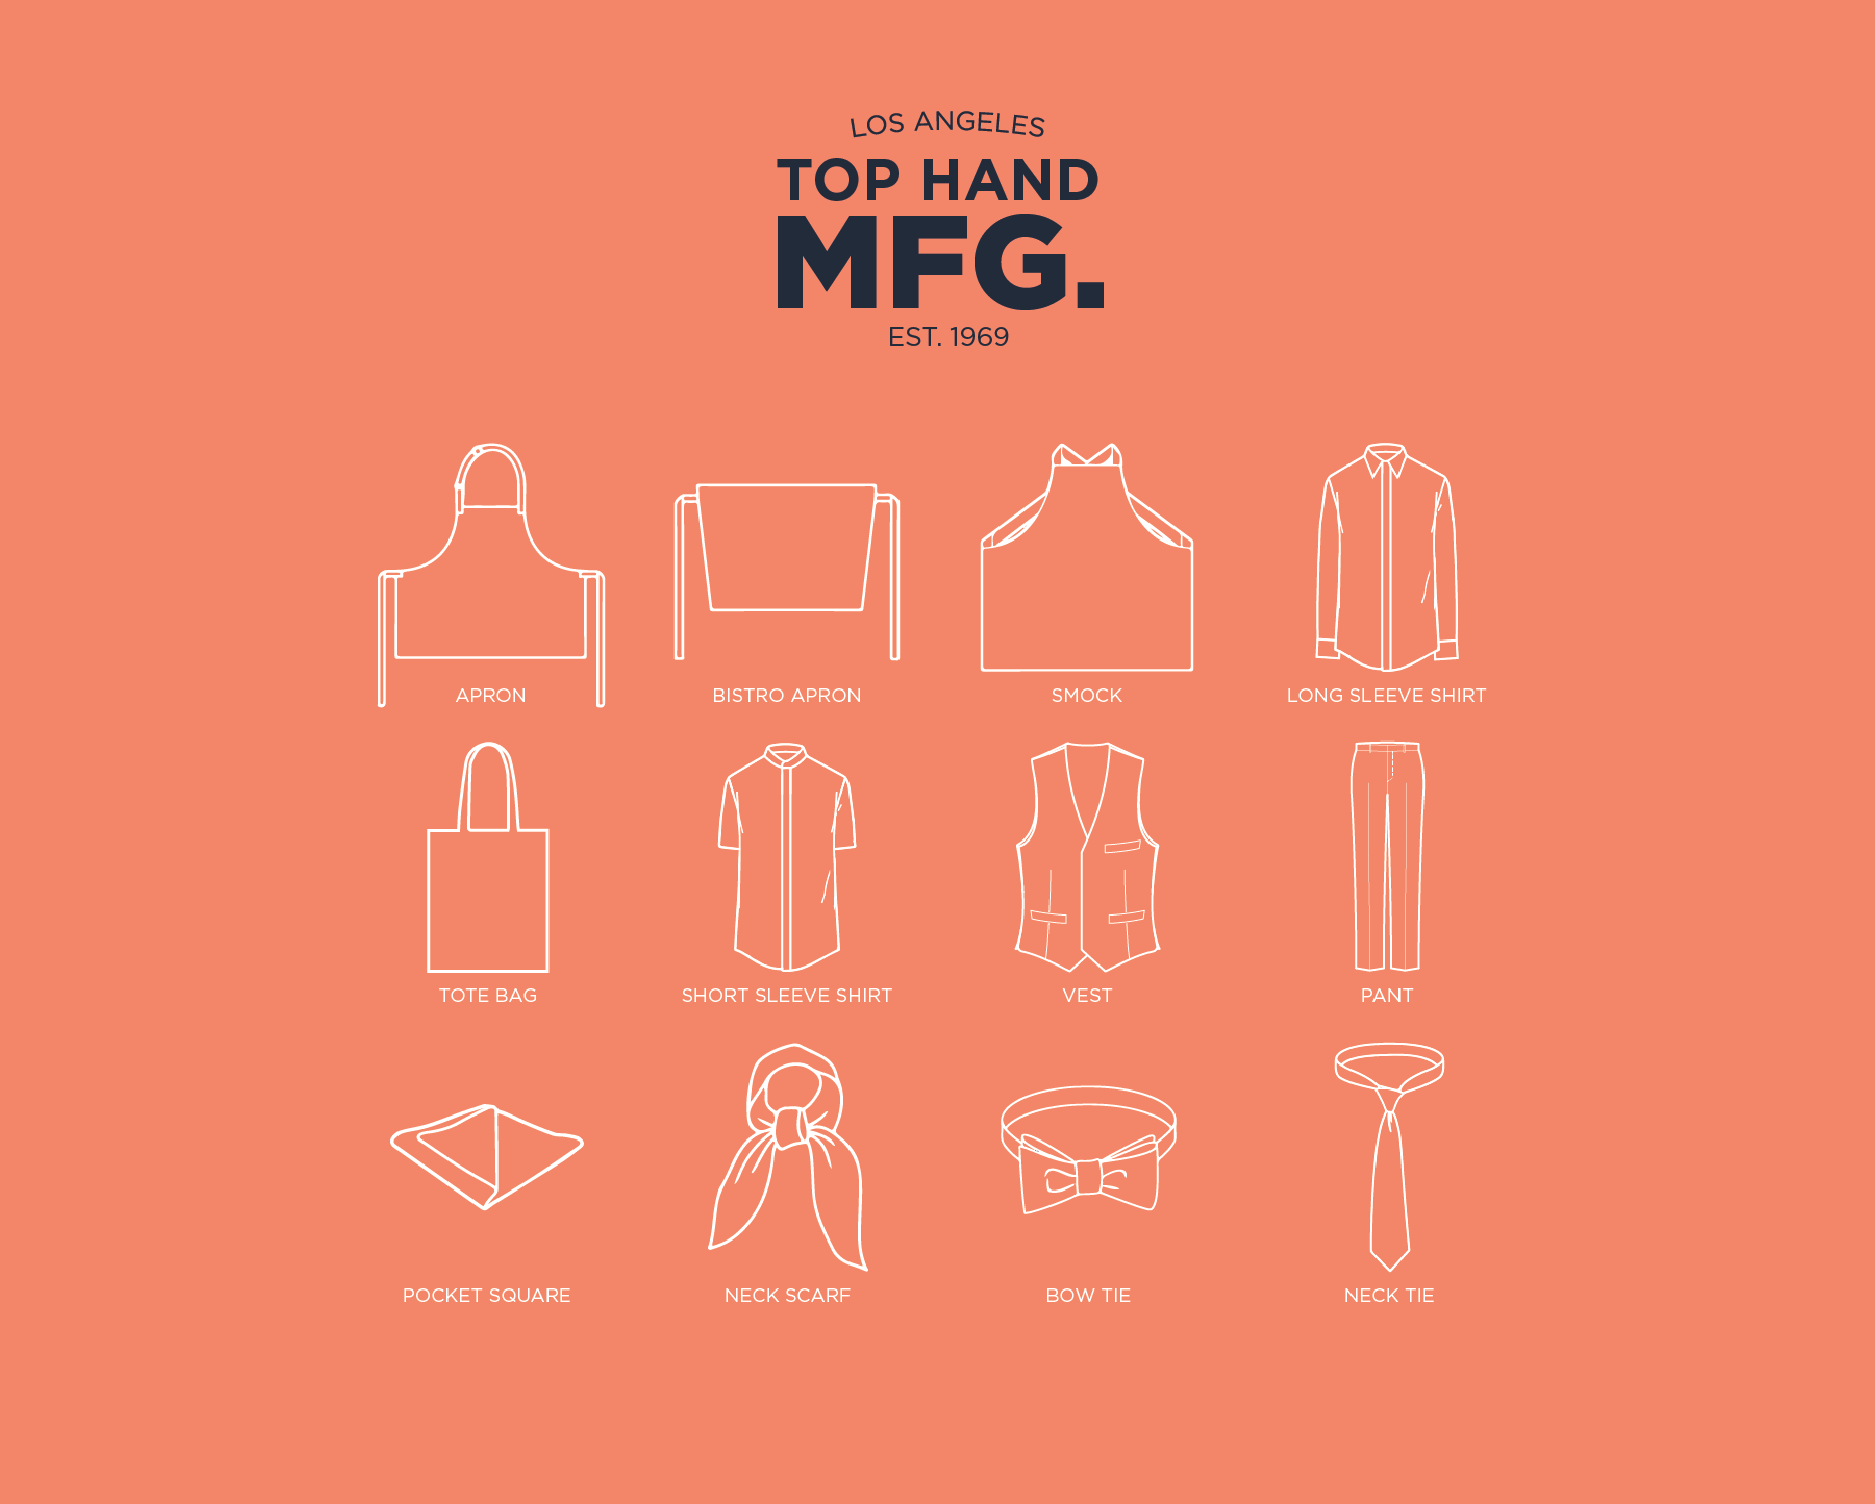 Los Angeles Tie Manufacturer - Top Hand Manufacturing - Pocket